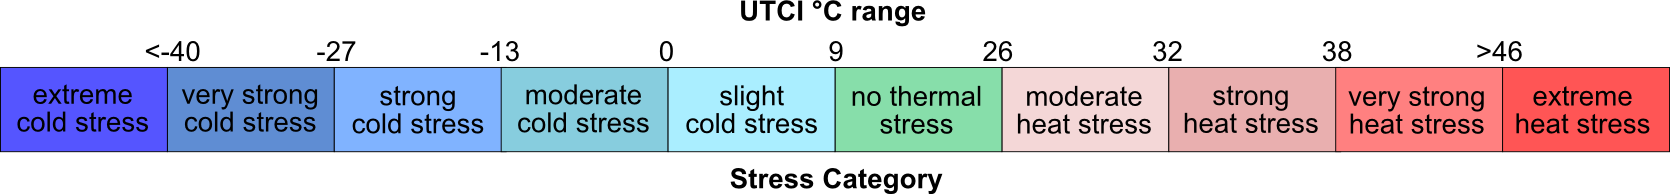 UTCI Scale Explanation